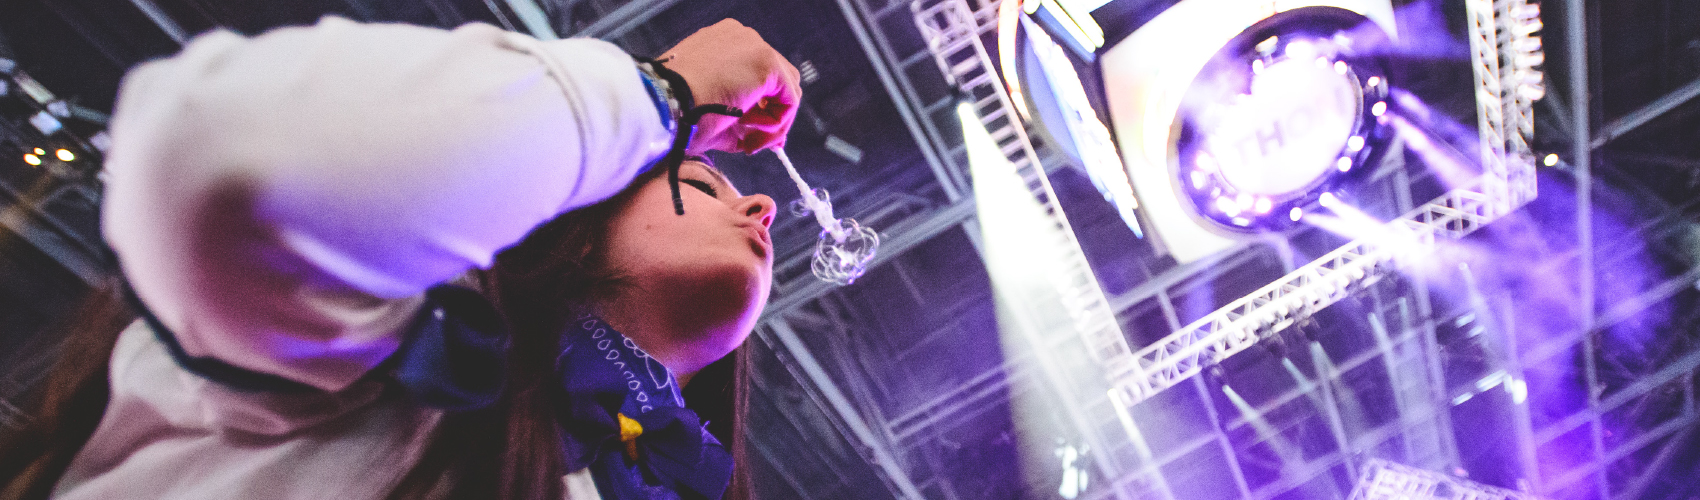 Student blowing bubble at THON